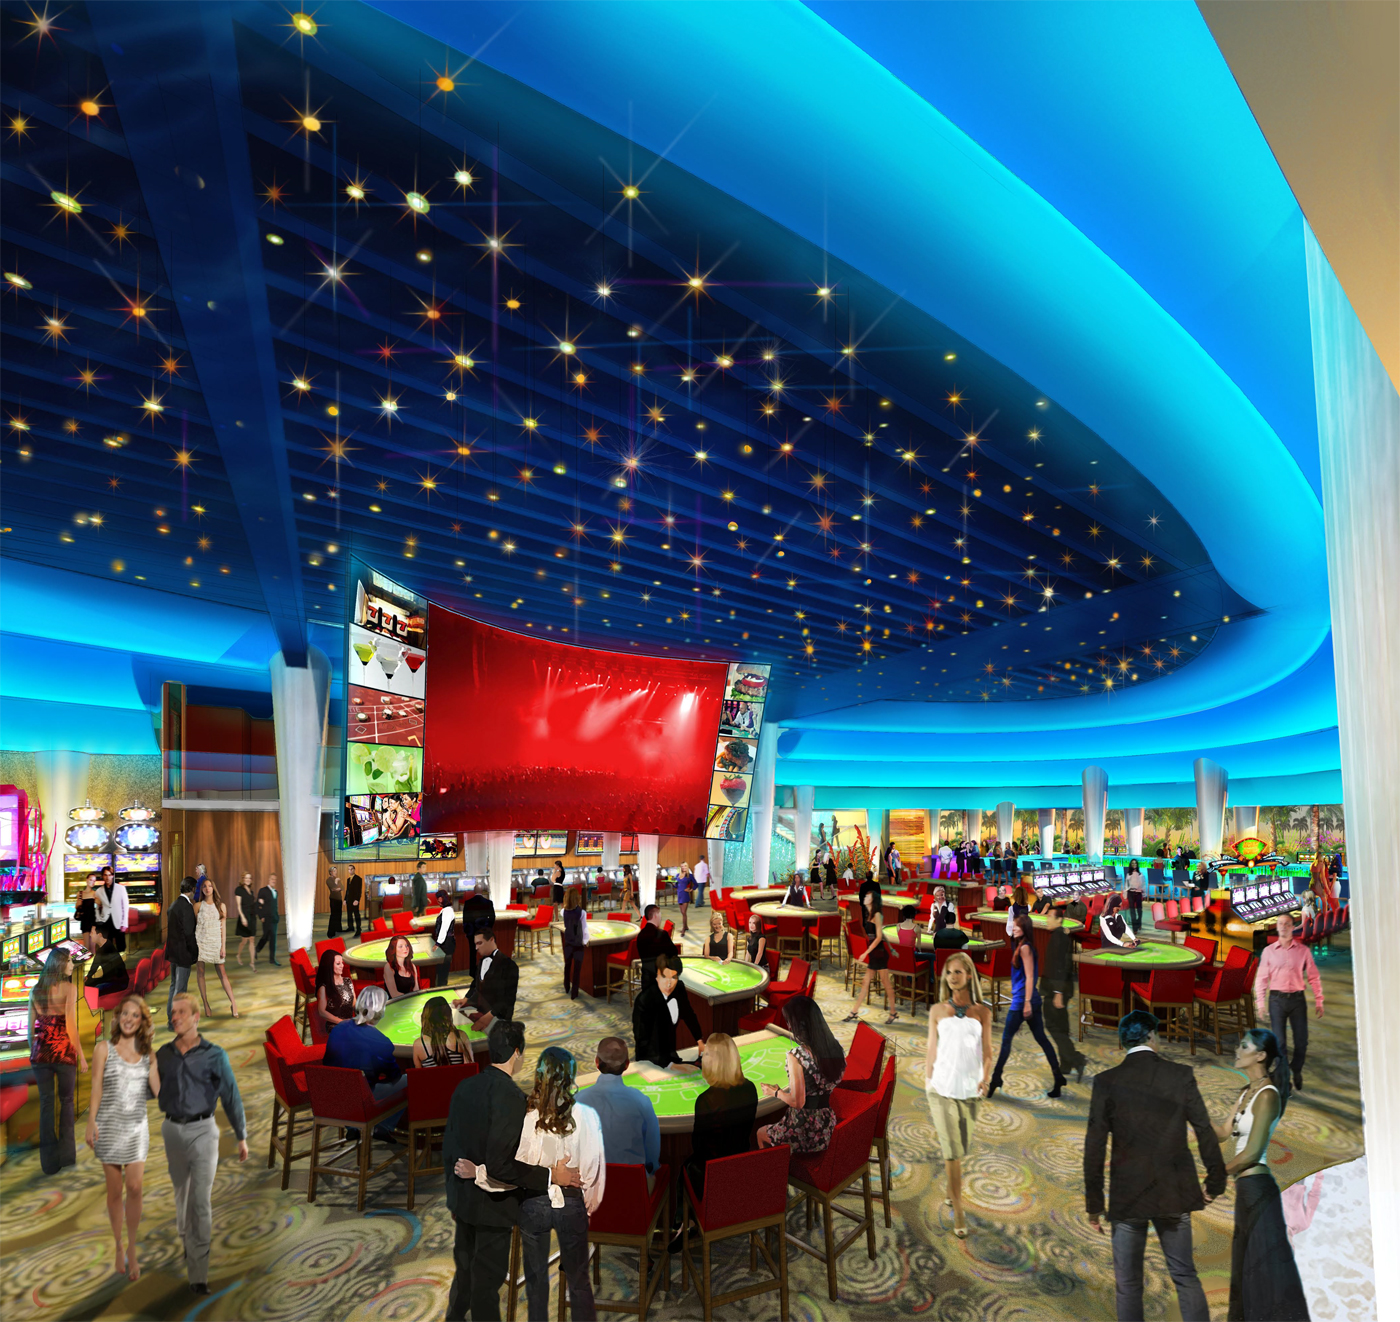 Bimini bay casino by ameristar casino in